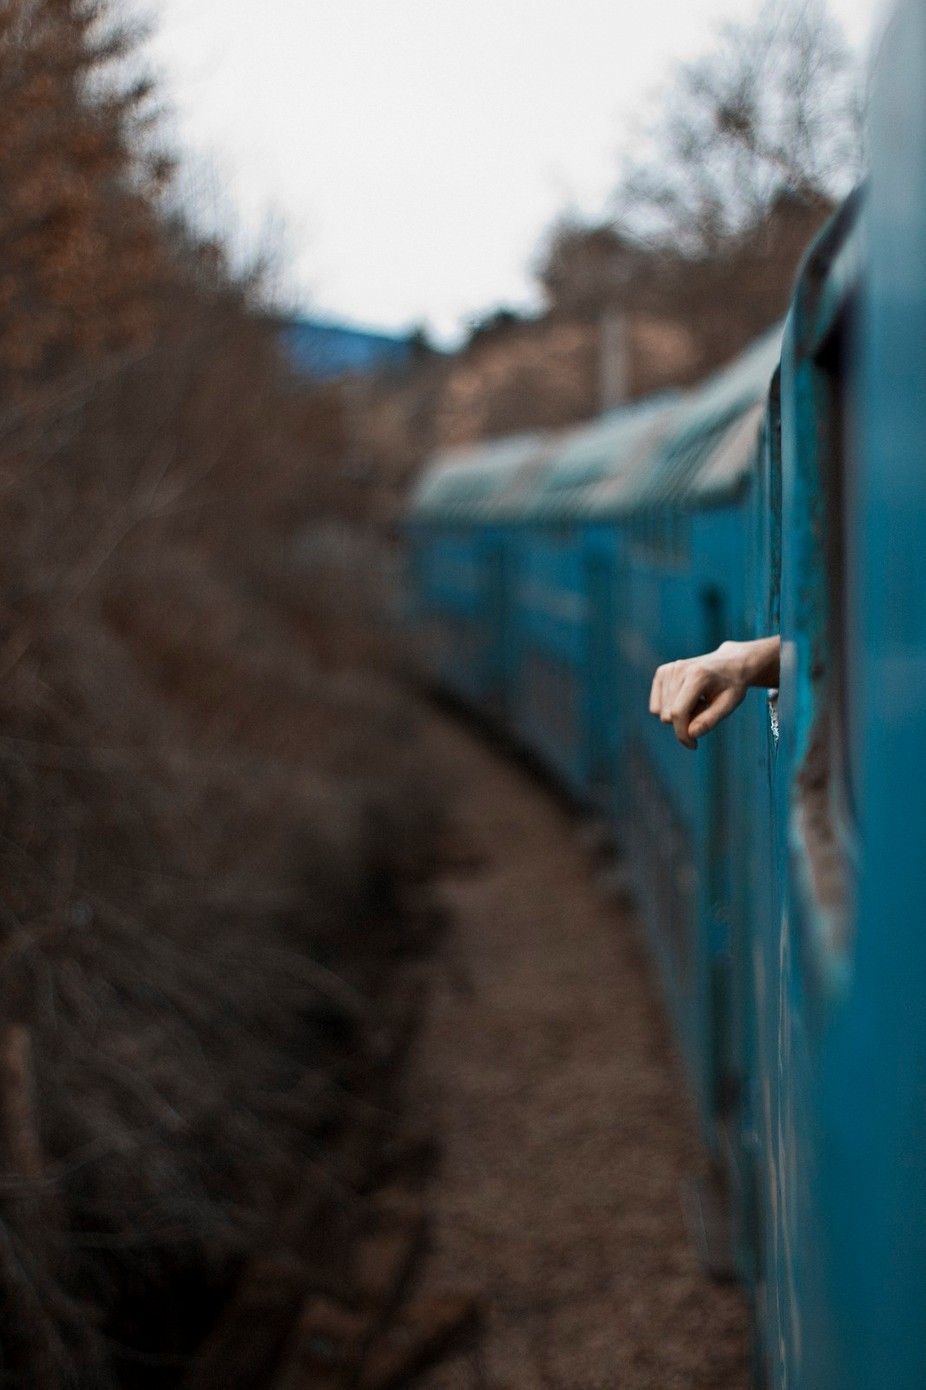 lone traveler by szcstams - Your Point Of View Photo Contest